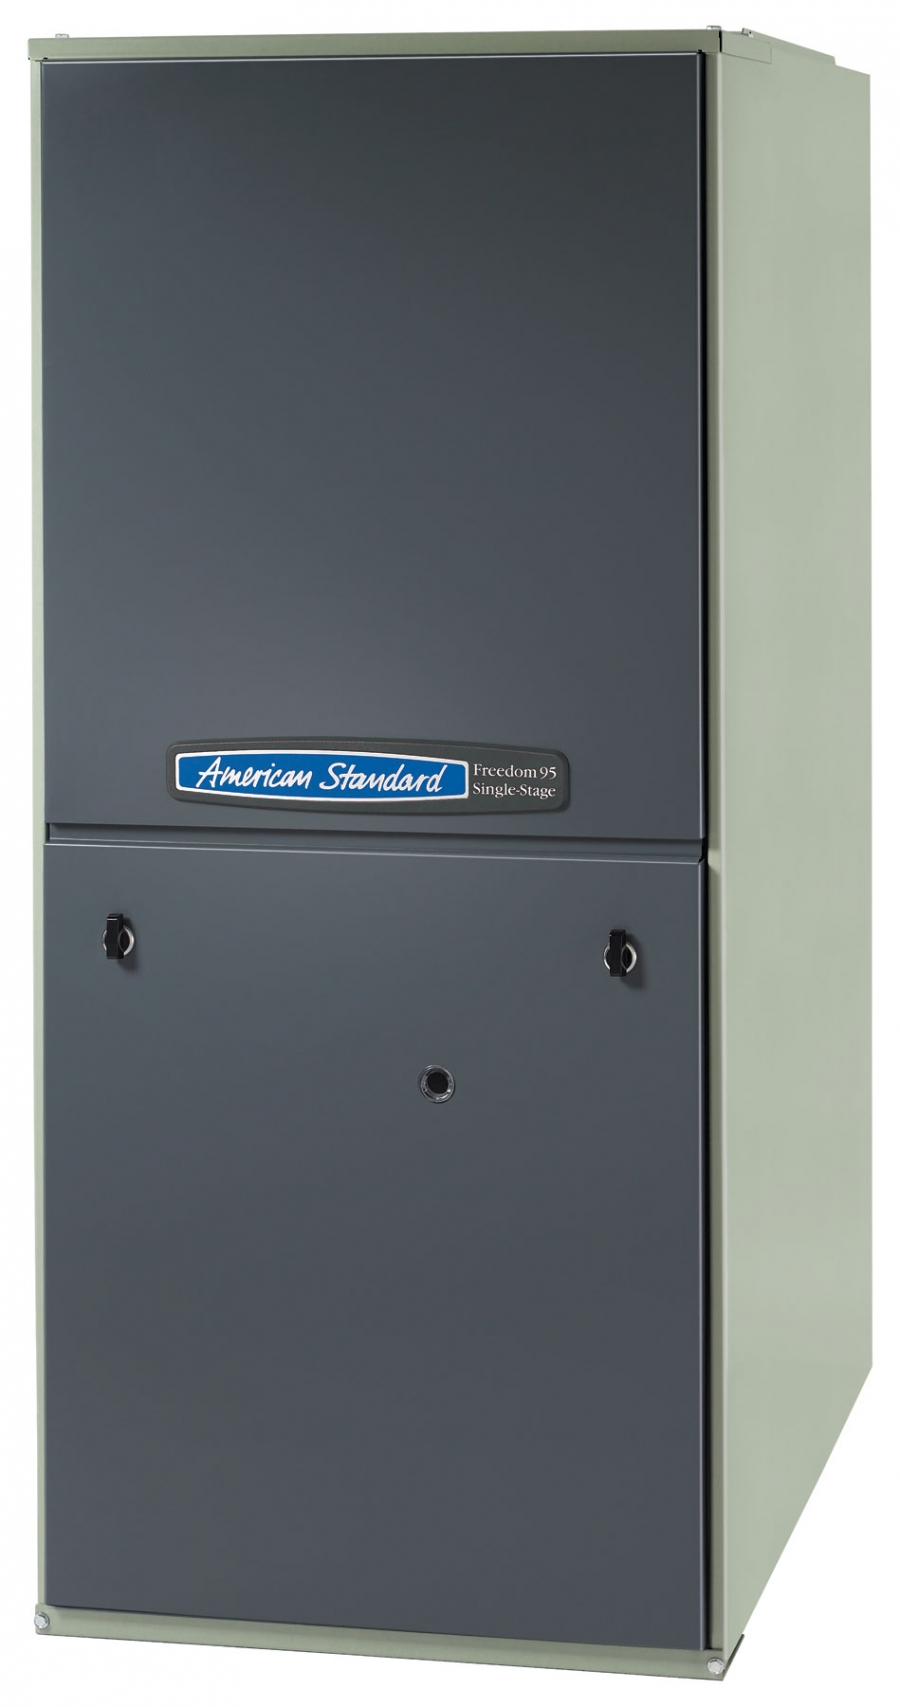 Freedom 95 variable speed single stage gas furnace for Variable speed motor furnace